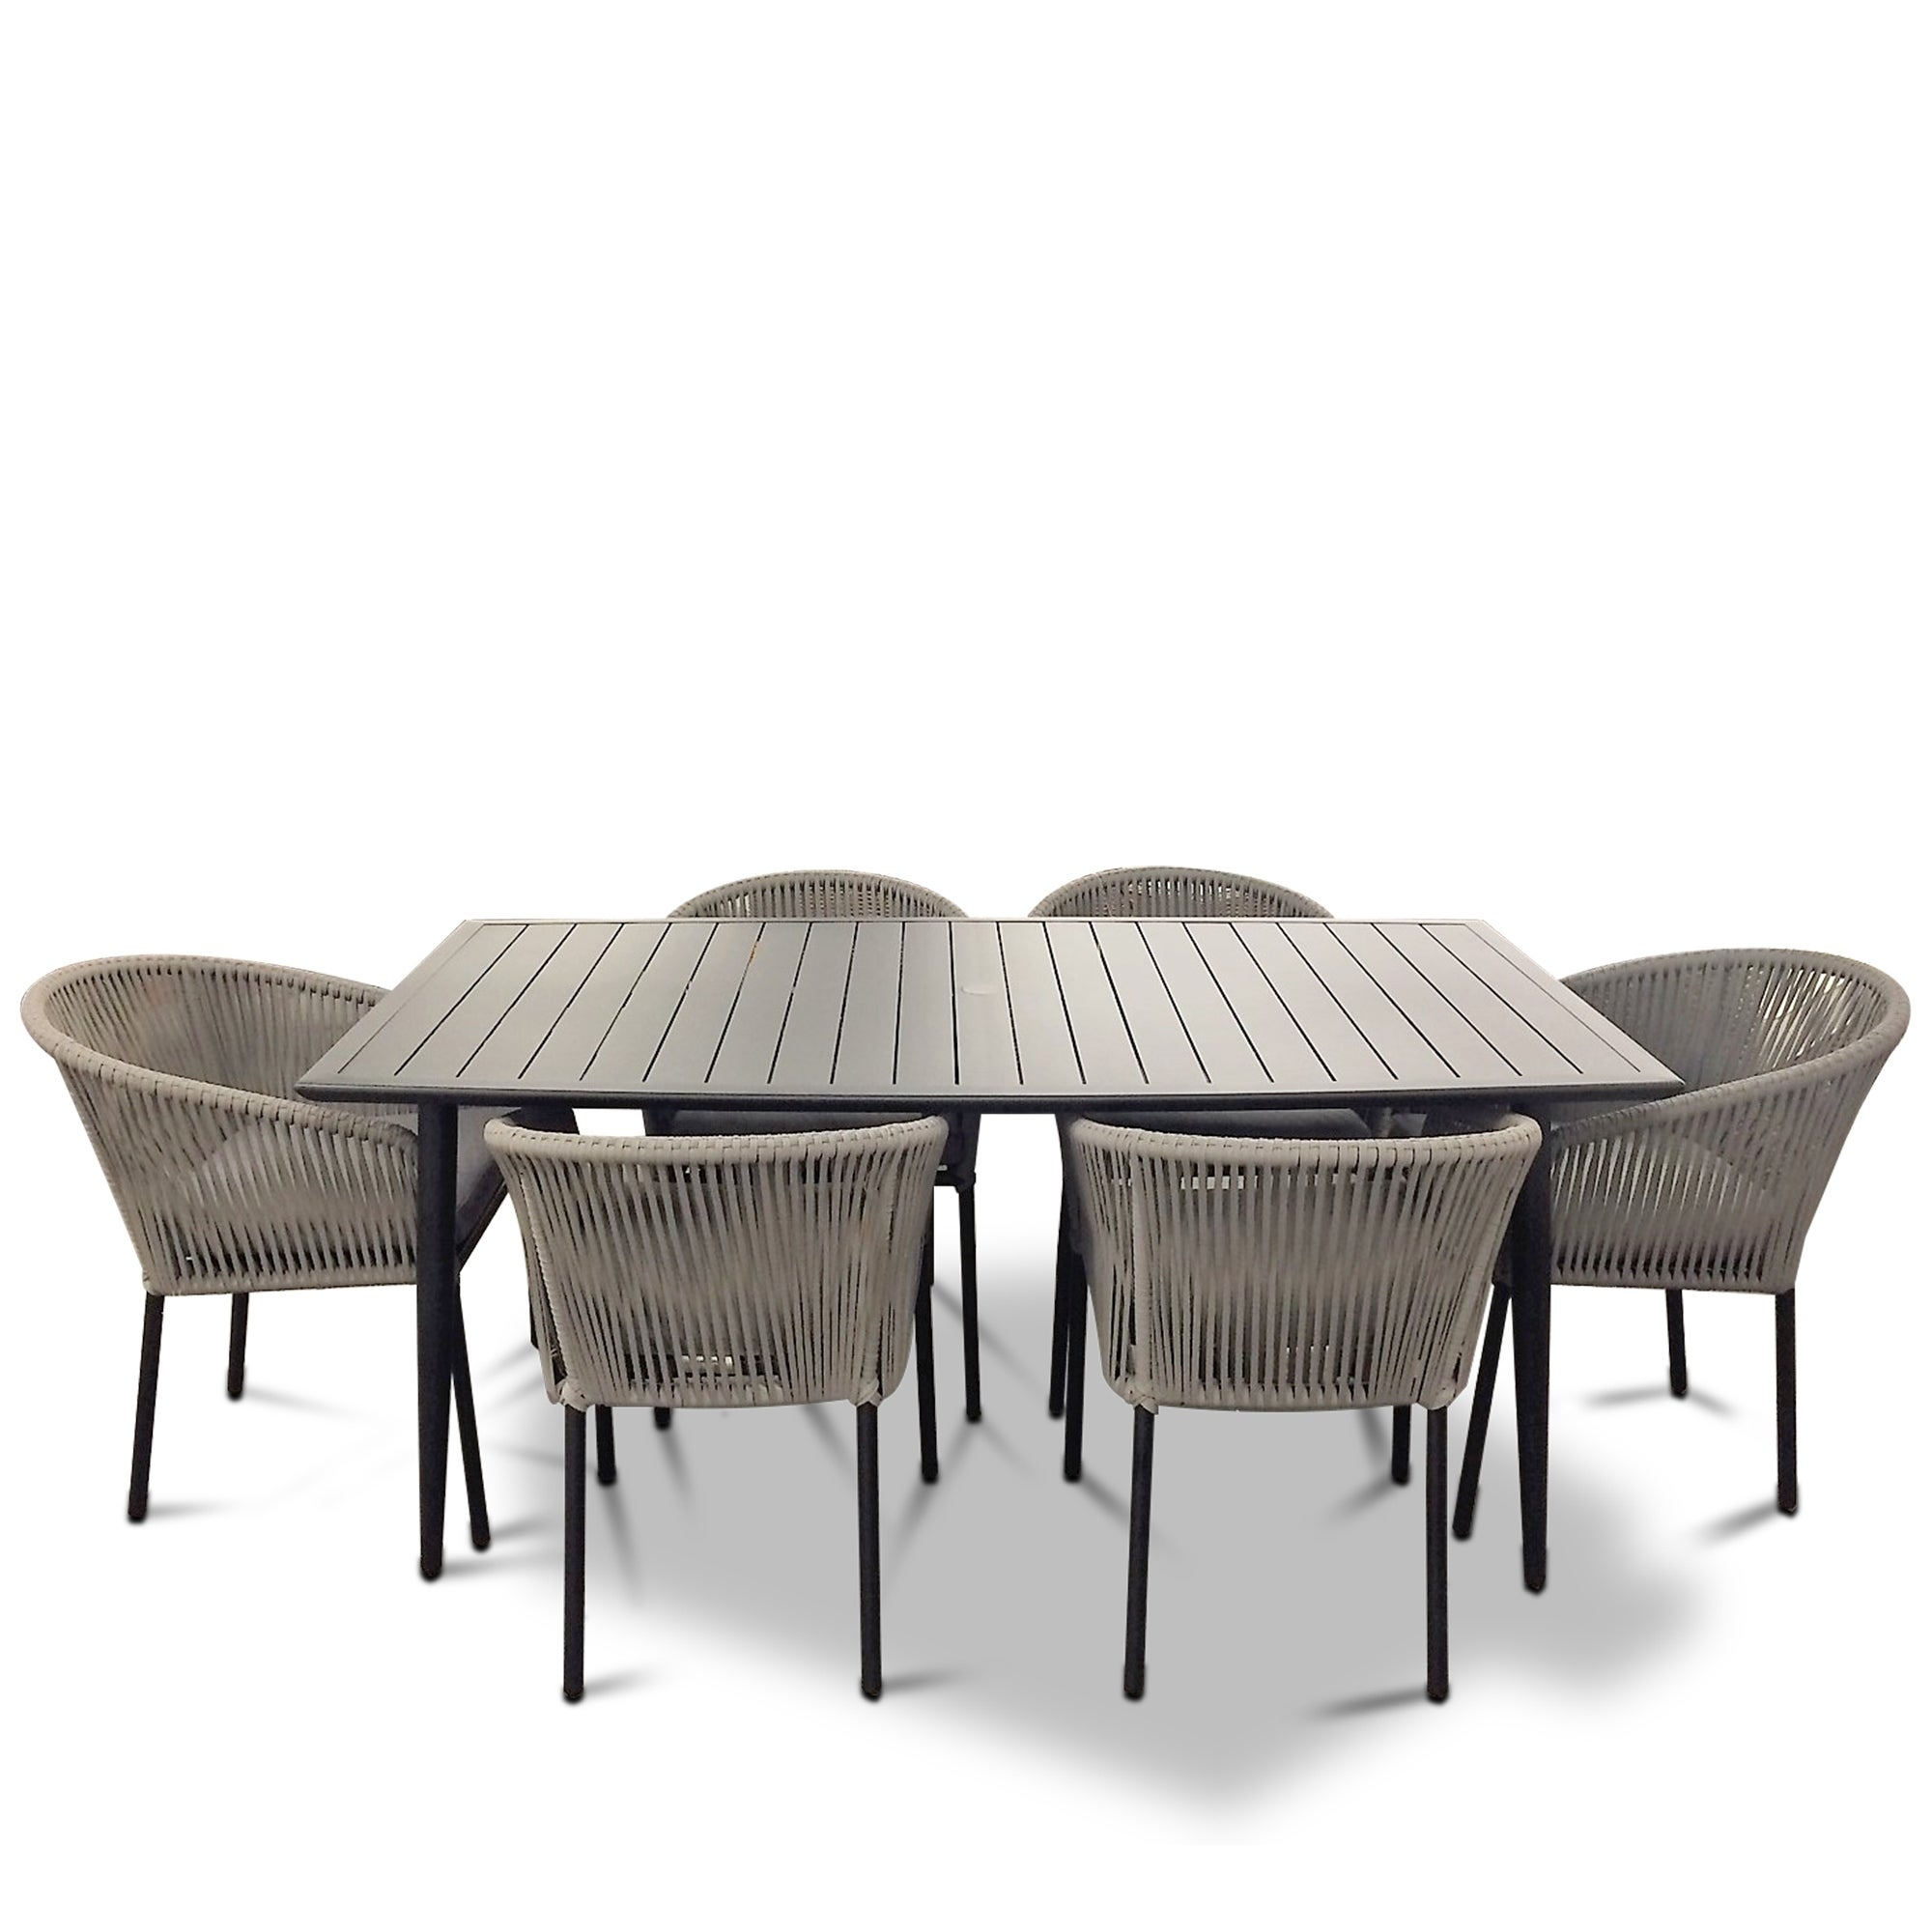 Courtyard Casual Osborne Black Aluminum Outdoor Dining Set W Table And 6 Chairs With Cushions